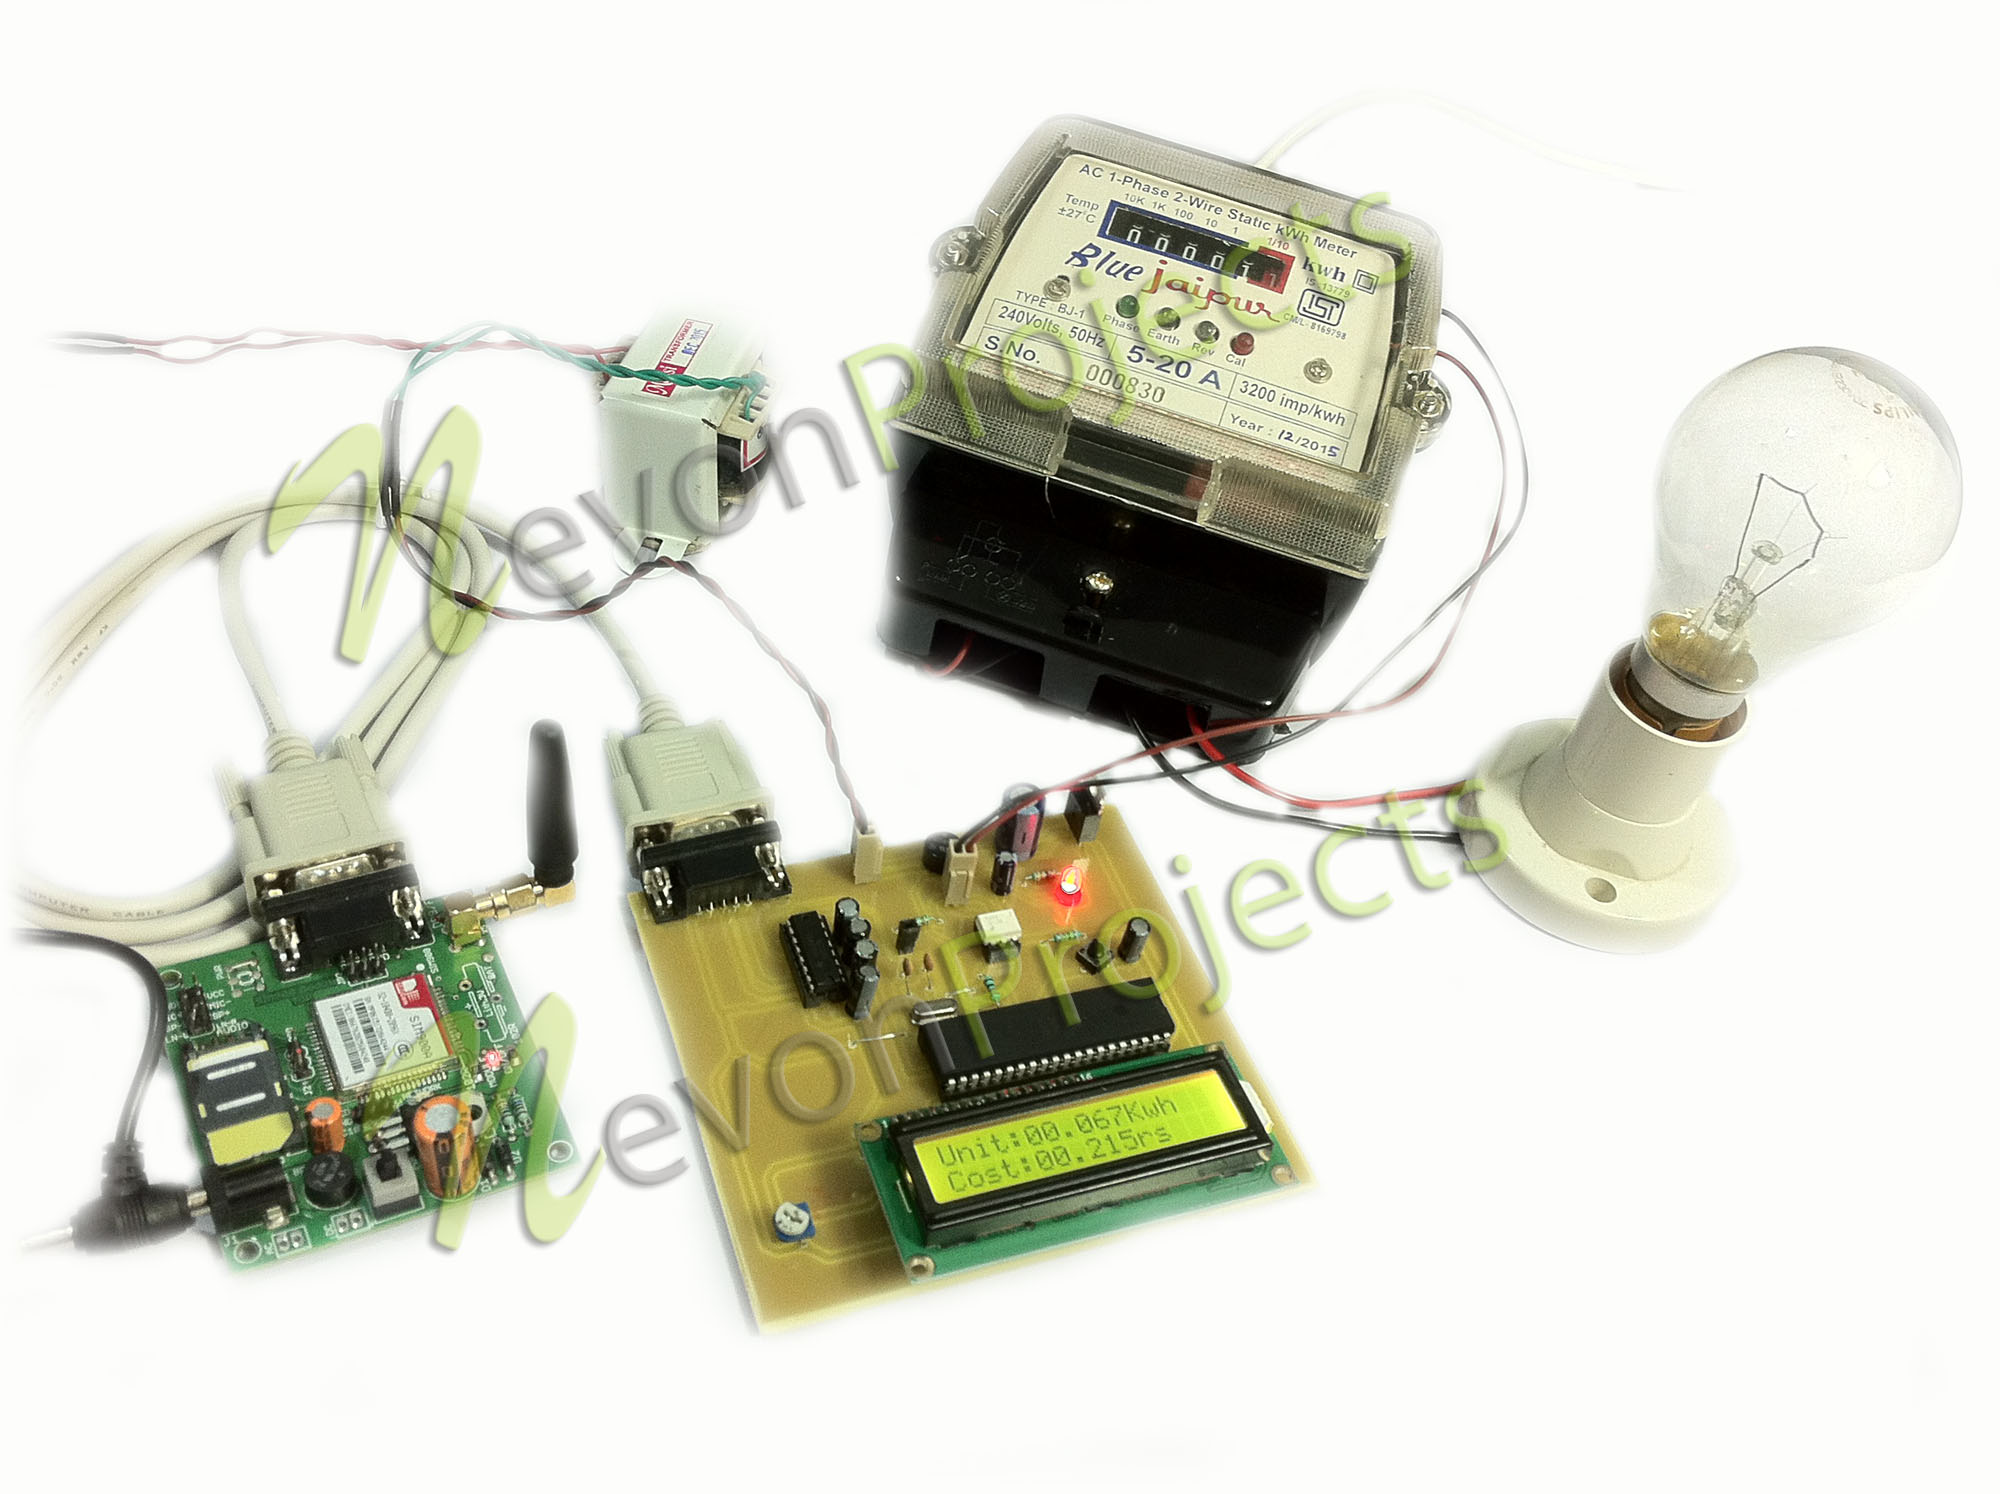 Monthly Electricity Billing Display With Bill Sms Feature Electronics Circuit Board 8051 Projects Power Supply Design